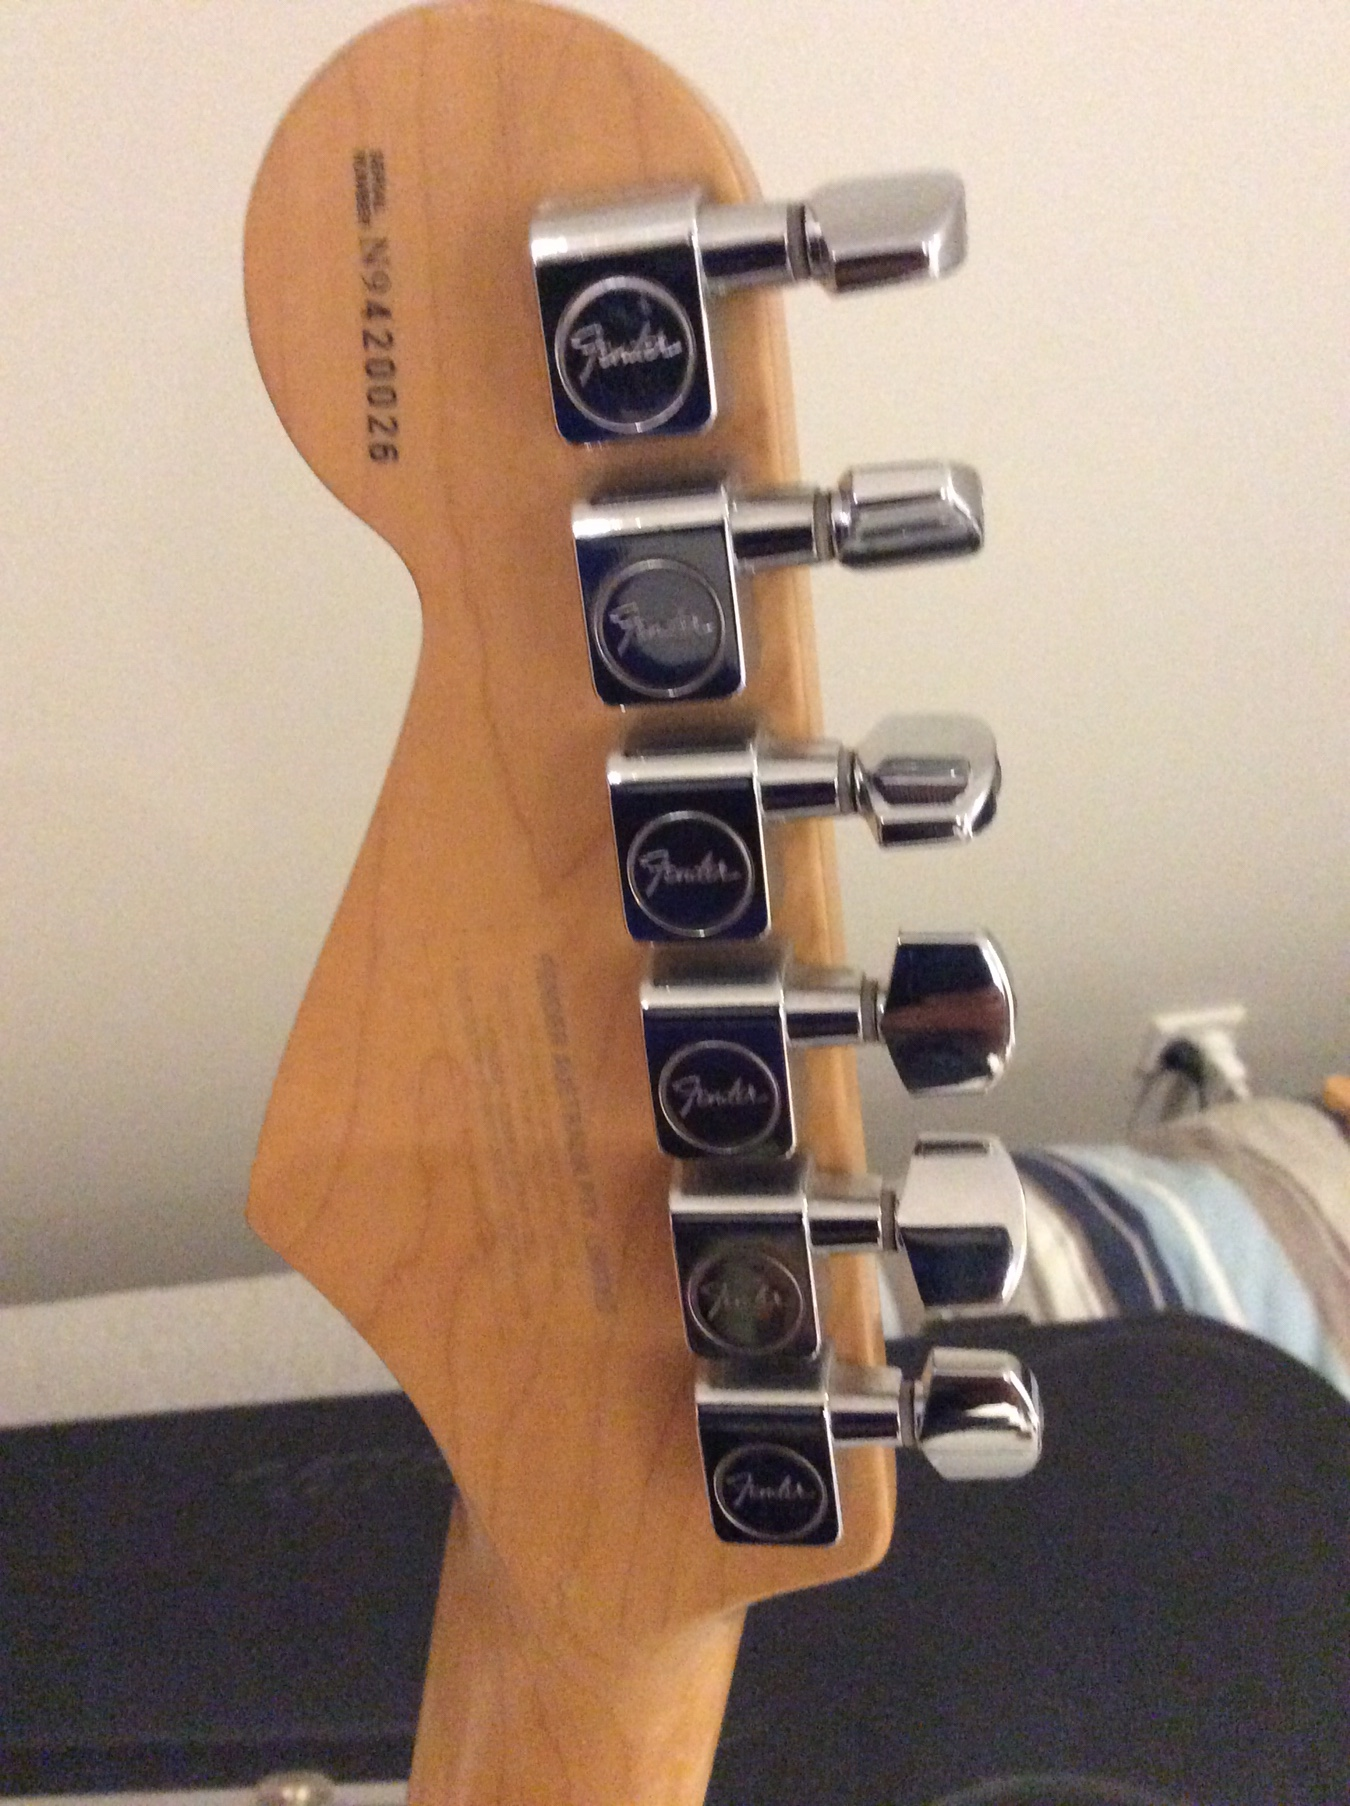 Fender 1999 limited Strat Value?